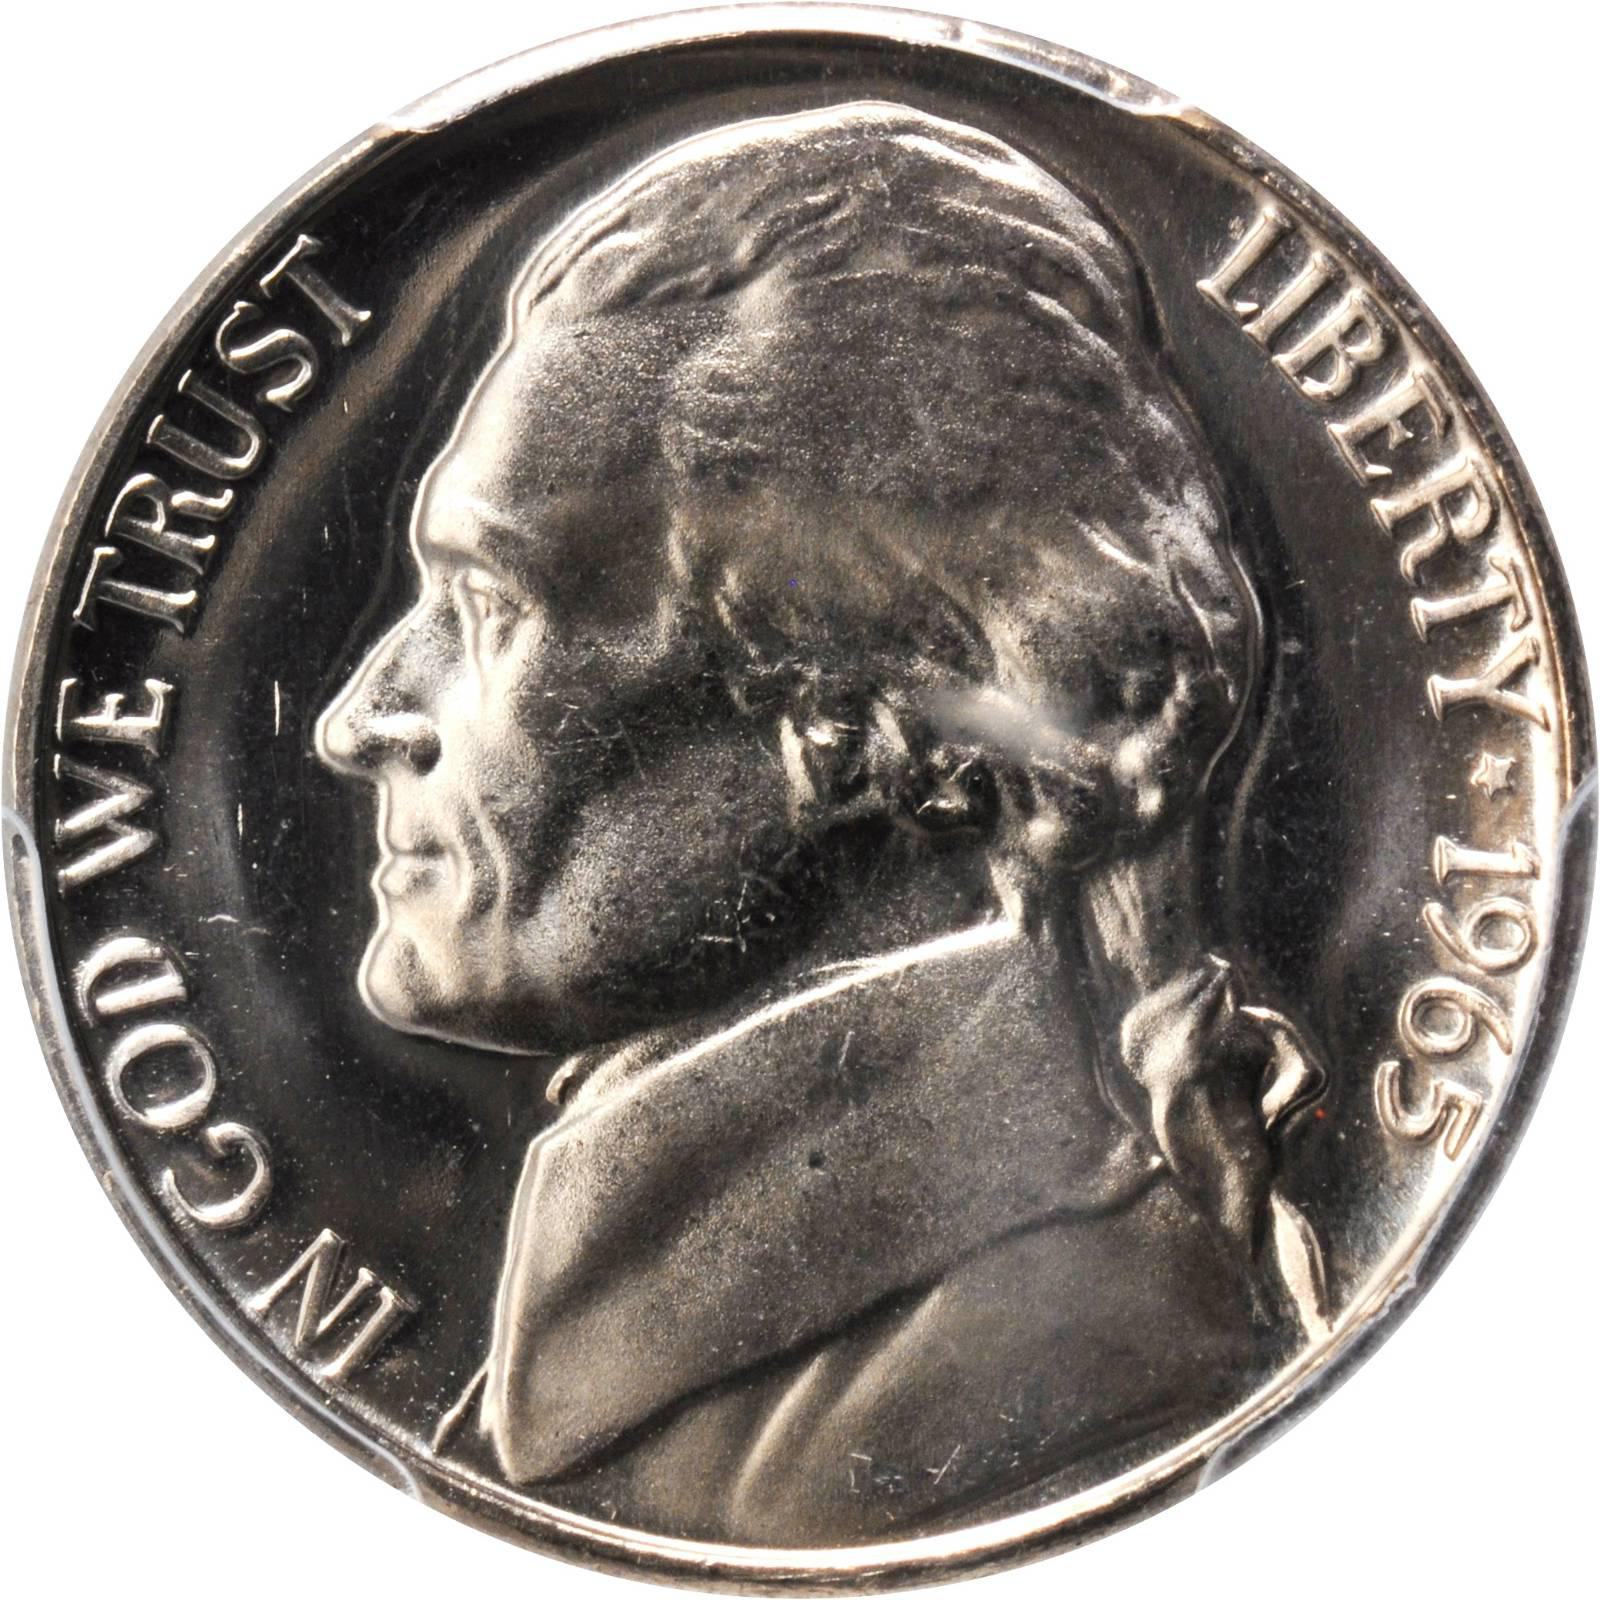 Value Of 1965 Jefferson Nickel